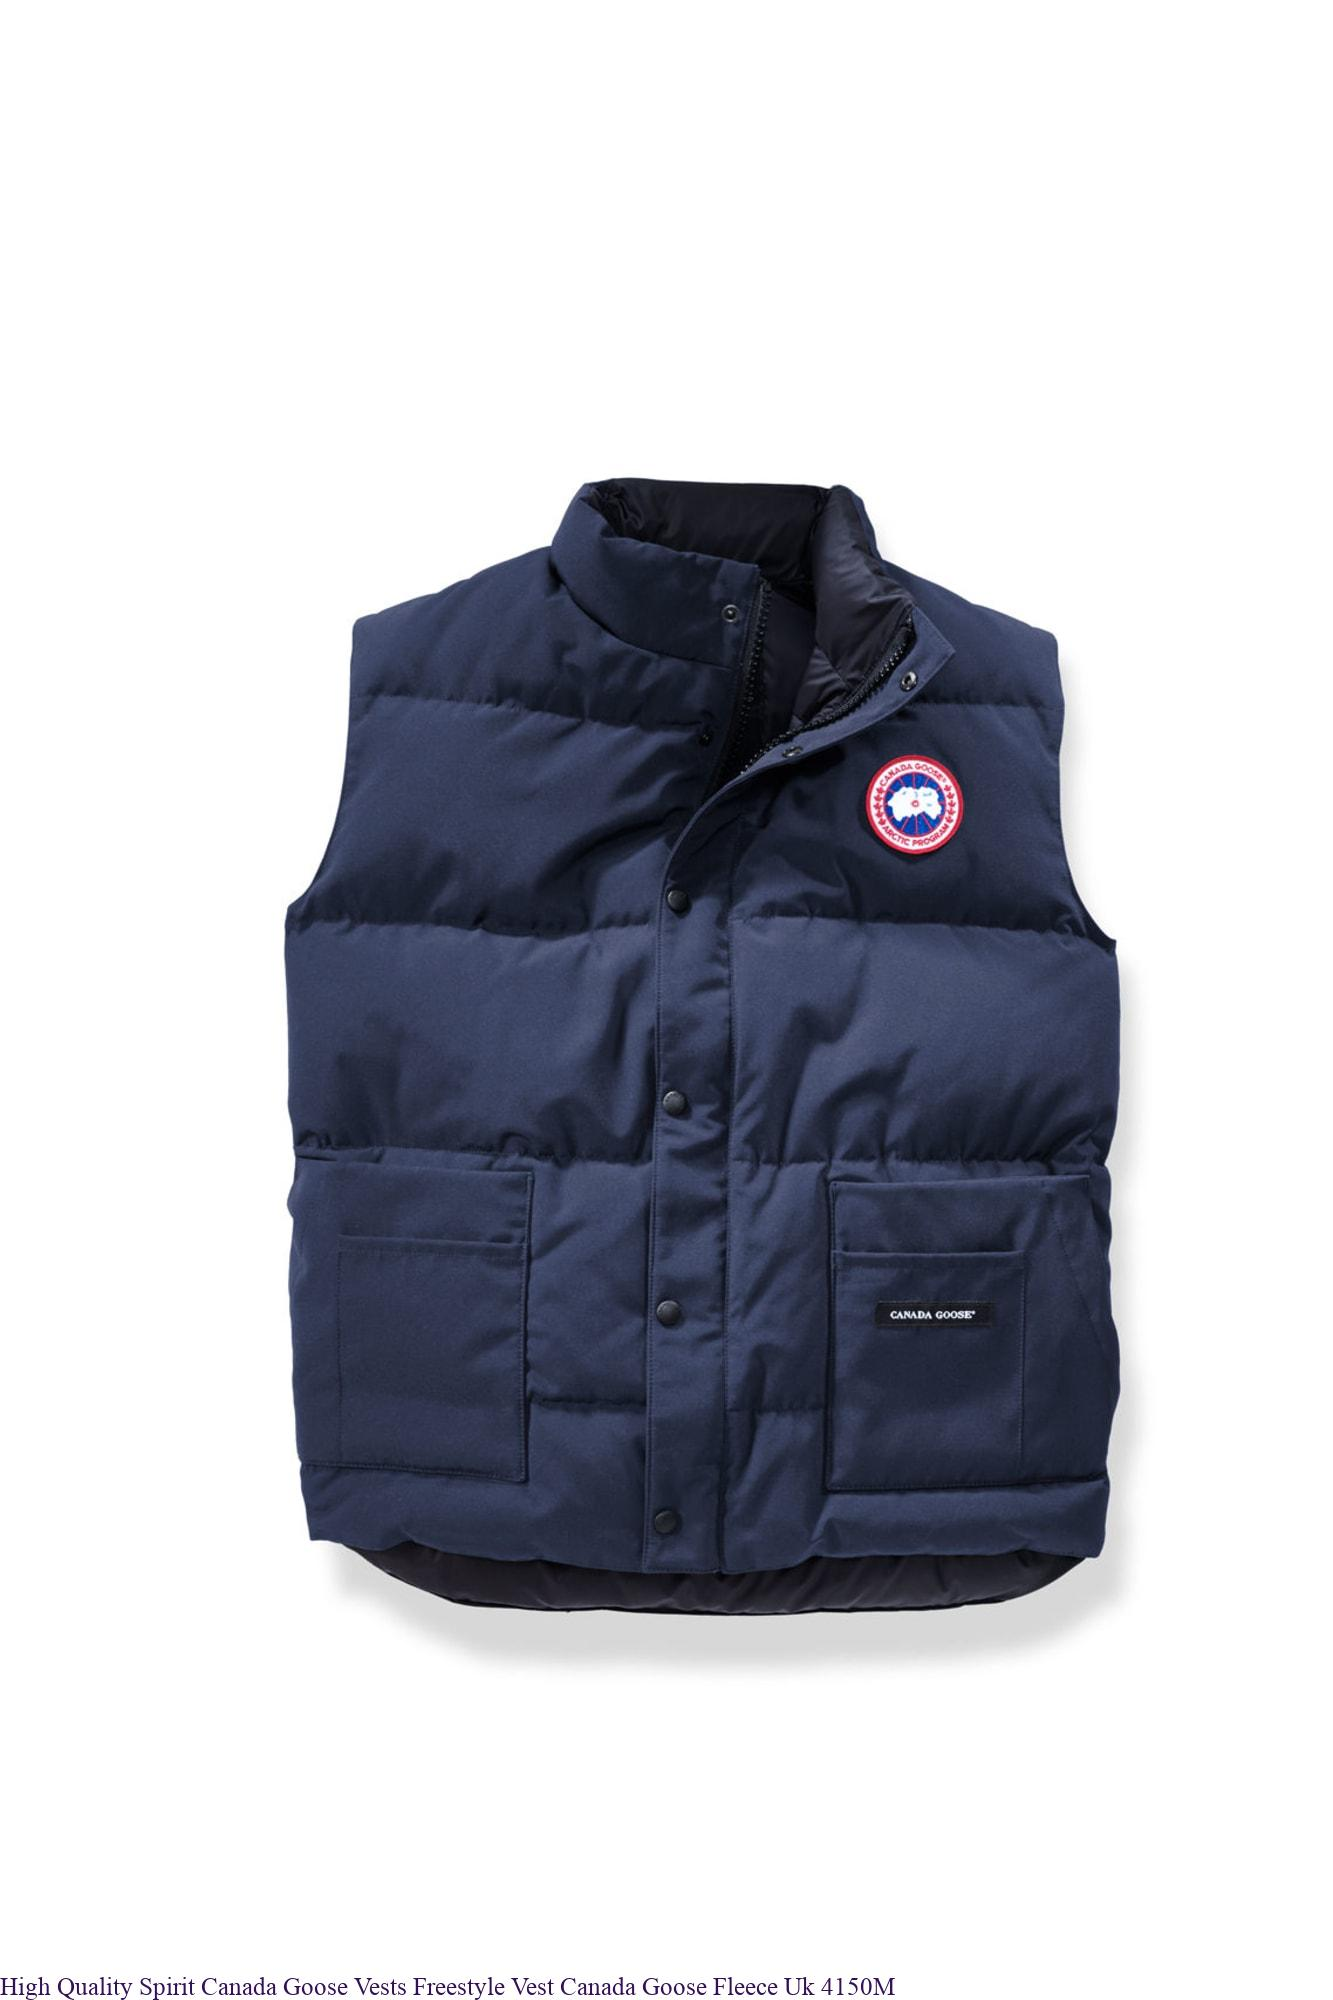 462cf1c9853 High Quality Spirit Canada Goose Vests Freestyle Vest Canada Goose Fleece  Uk 4150M – We Sale 2019 New Arrival And Cheap Canada Goose Outlet Black  Friday